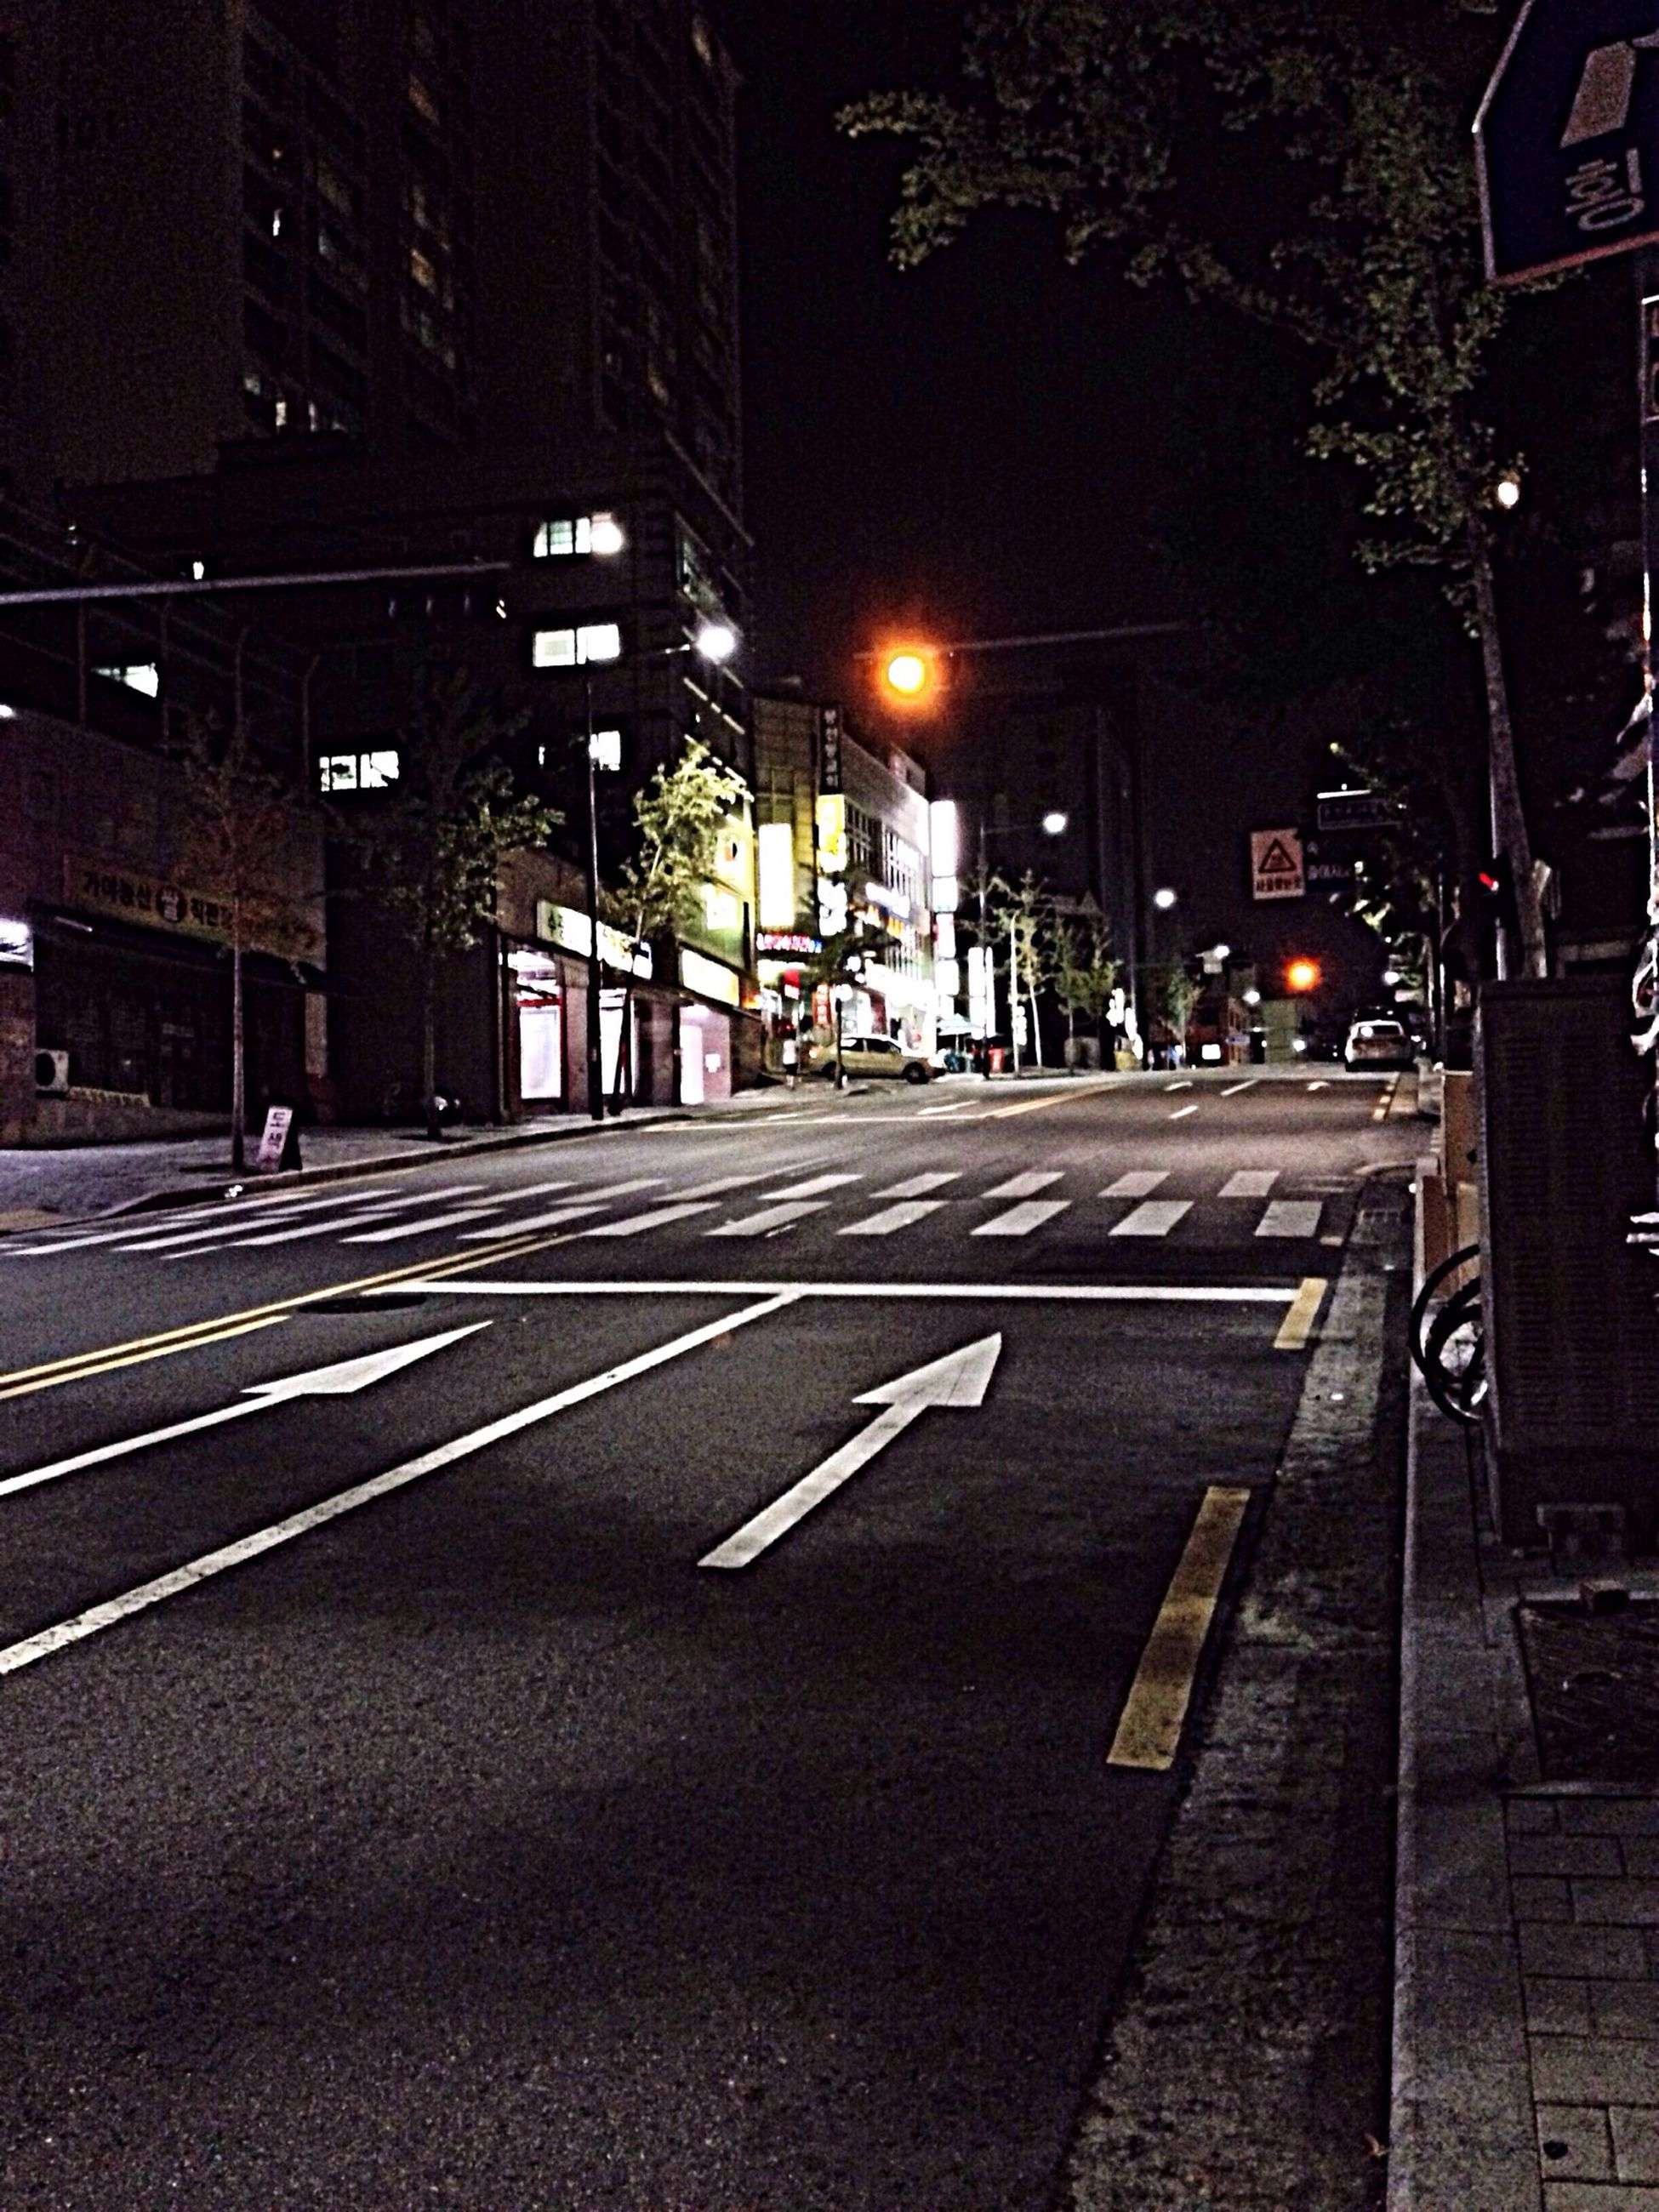 building exterior, illuminated, night, architecture, built structure, transportation, street light, city, street, the way forward, road marking, road, lighting equipment, empty, diminishing perspective, outdoors, city street, city life, building, railroad track